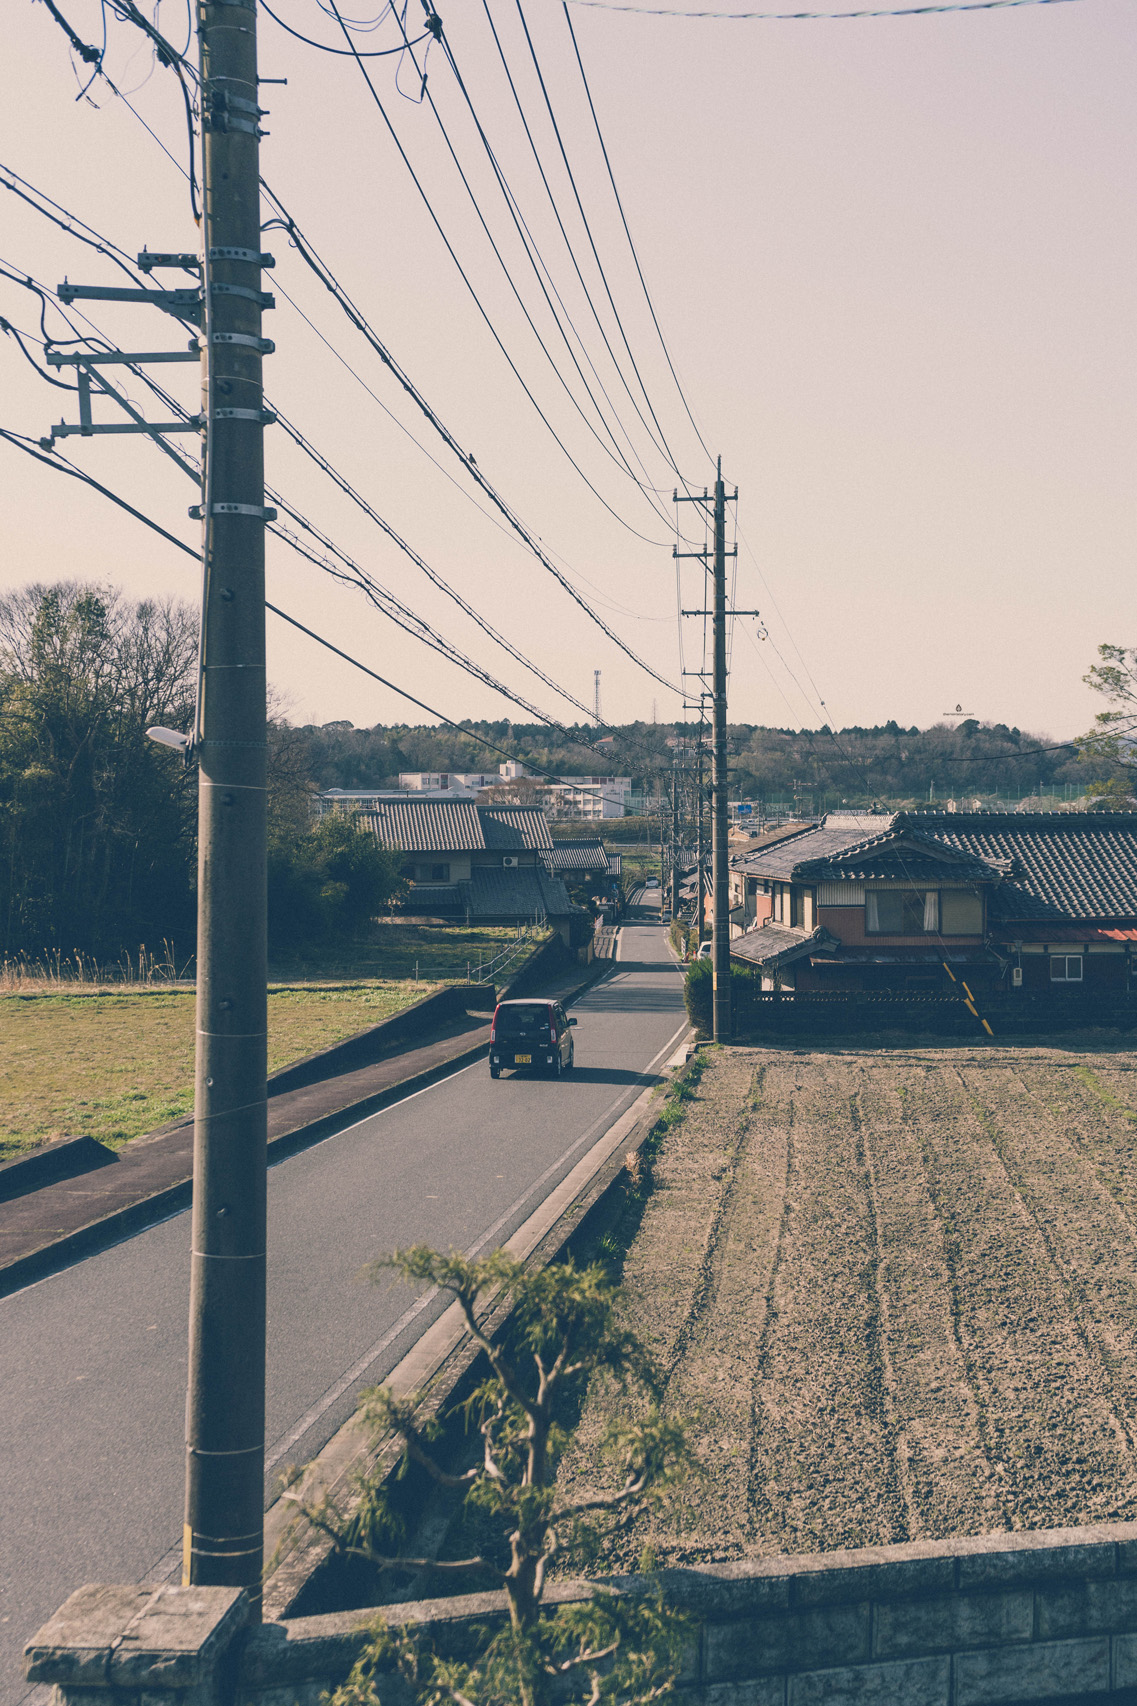 On the street in Iga, Mie prefecture